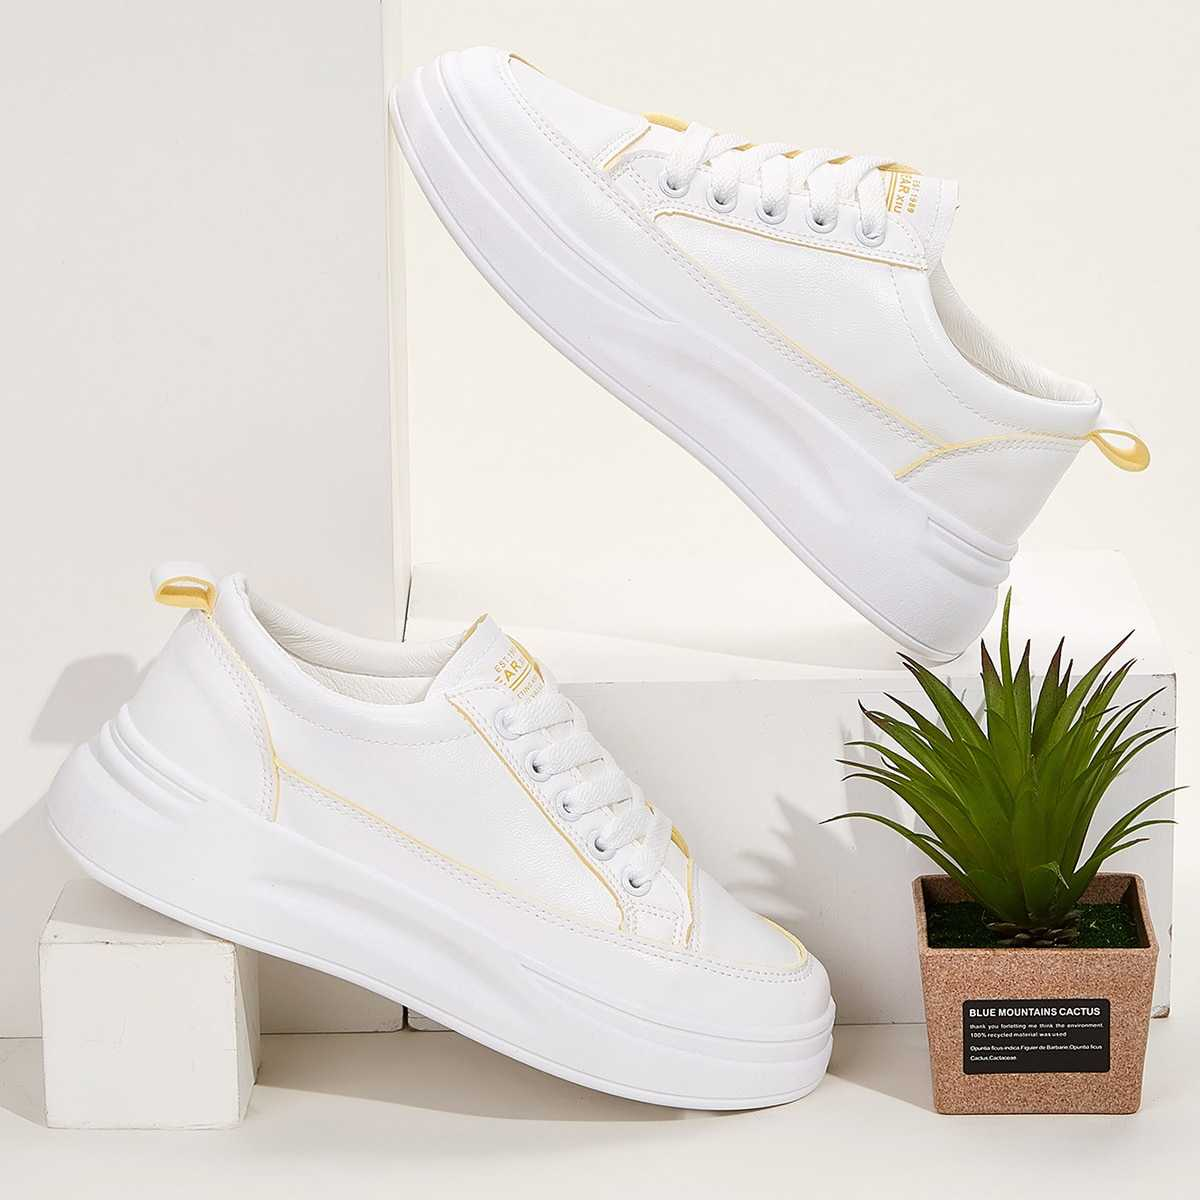 Lace-up Front Chunky Sole Trainers in White by ROMWE on GOOFASH